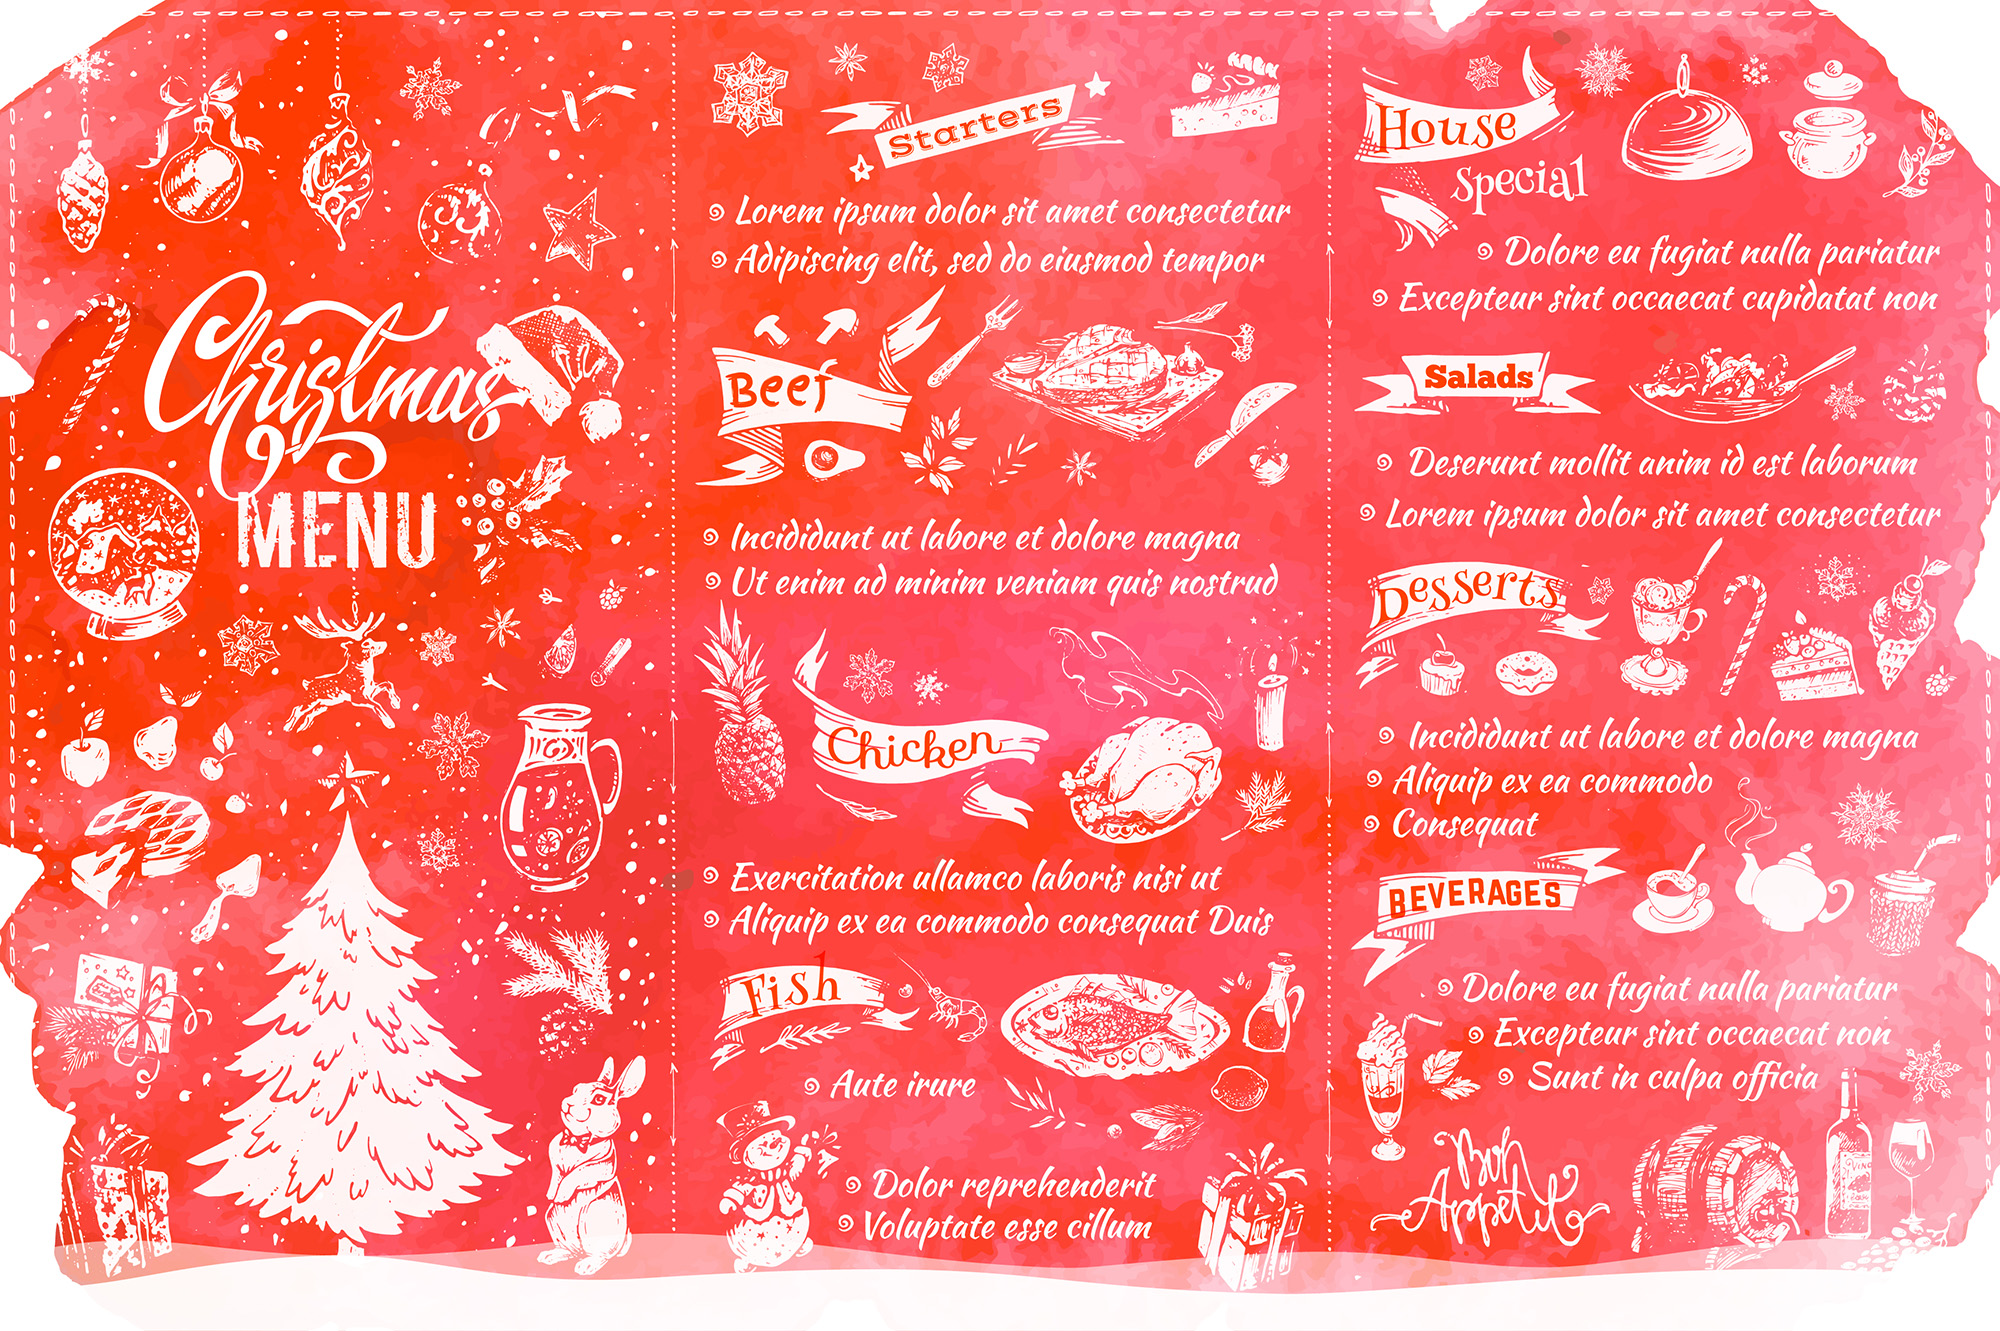 Christmas Menu Design. Hand Drawn Illustrations example image 5